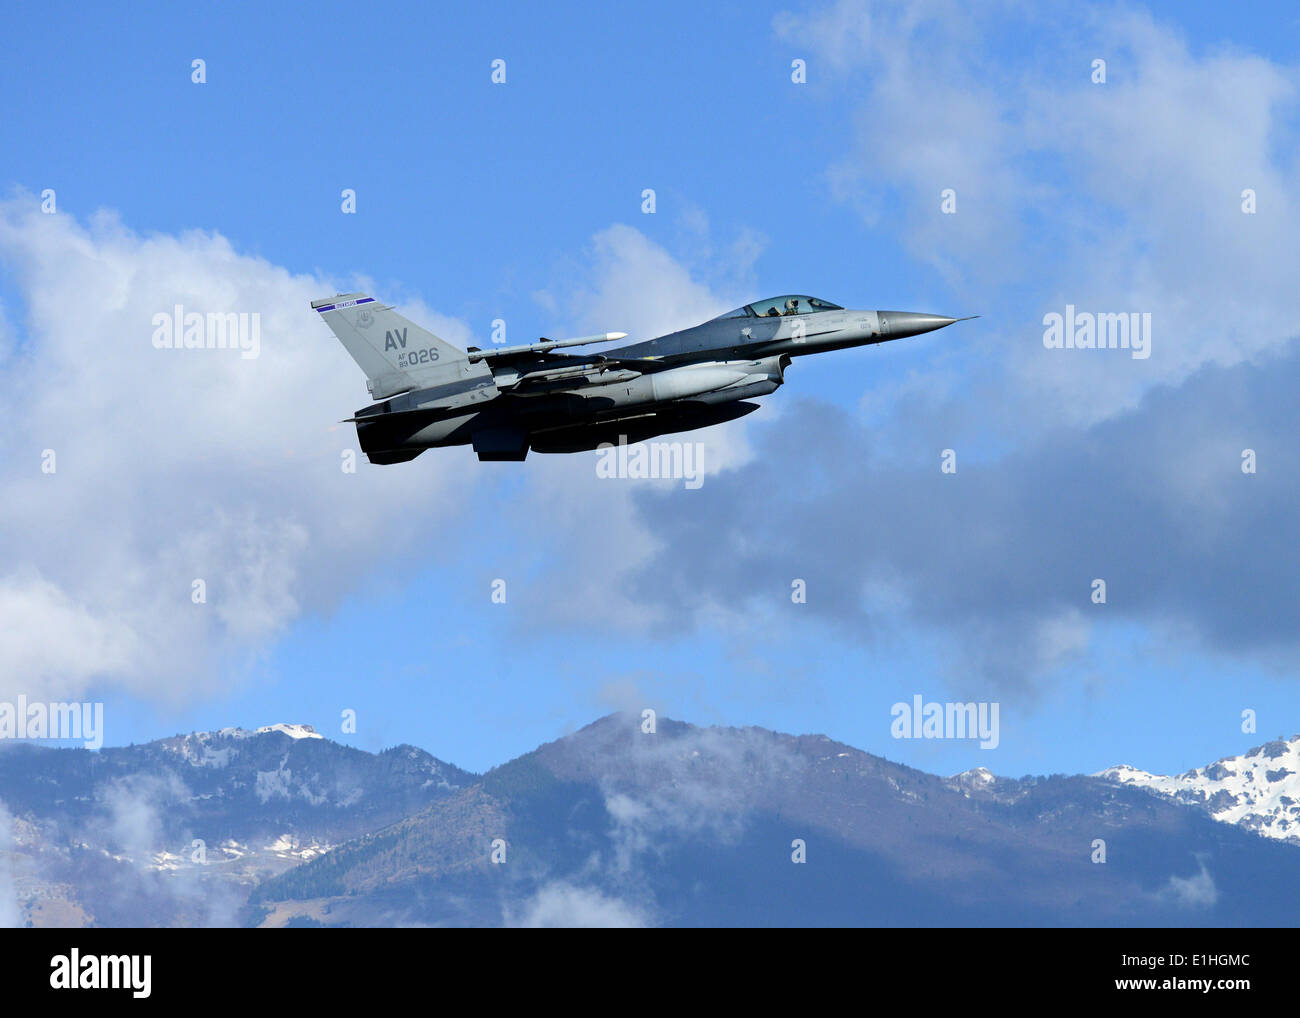 A U.S. Air Force F-16 Fighting Falcon aircraft assigned to the 510th Fighter Squadron takes off at Aviano Air Base, Italy, Apri - Stock Image